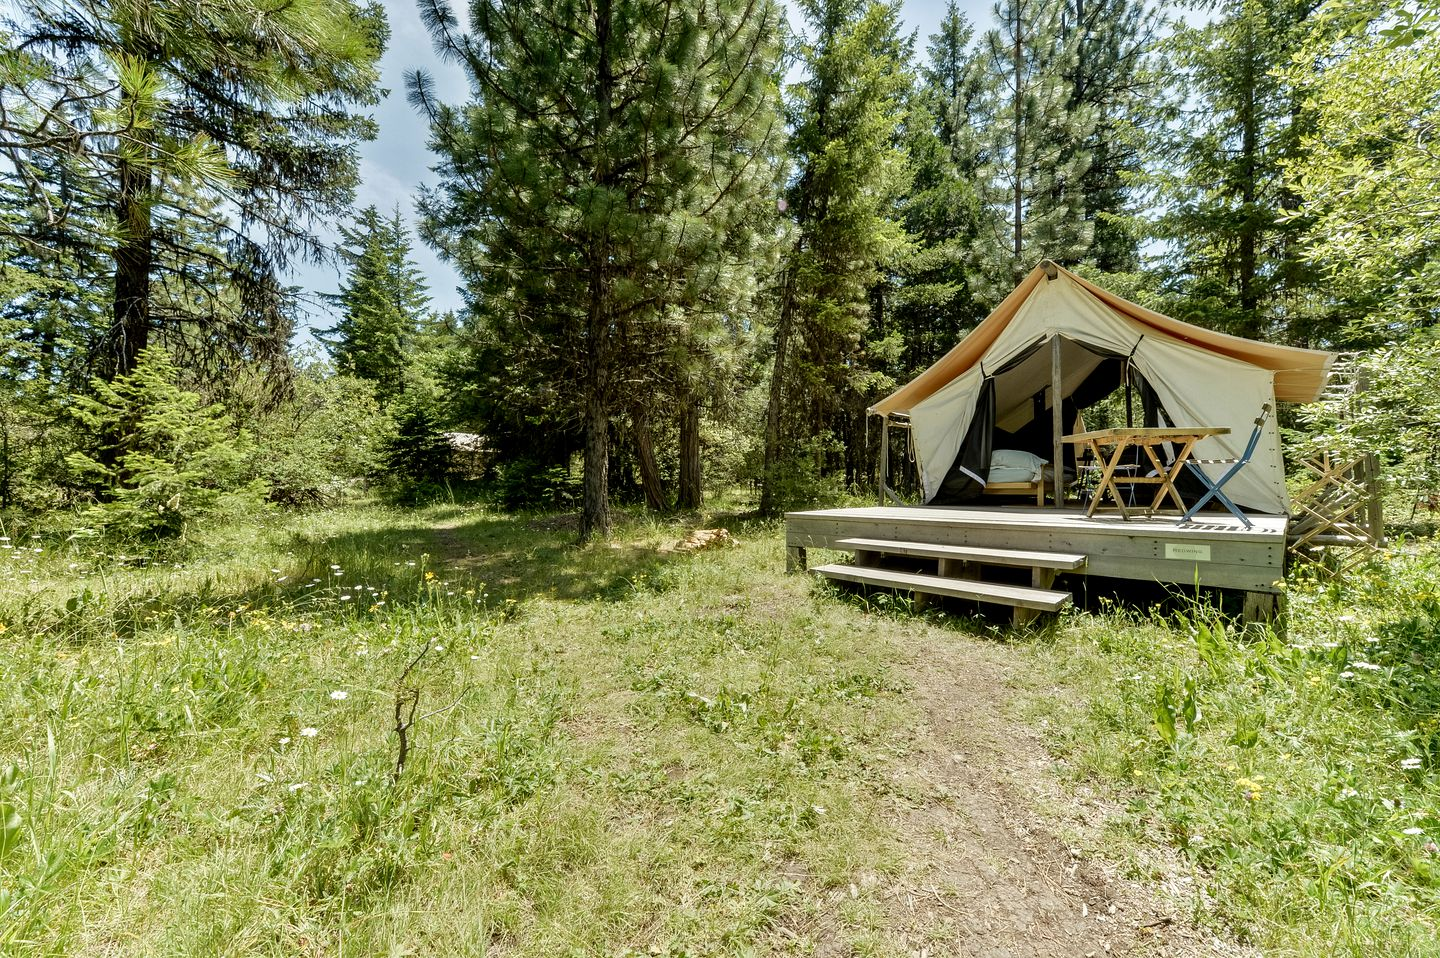 Safari Tents (Ashland, Oregon, United States)